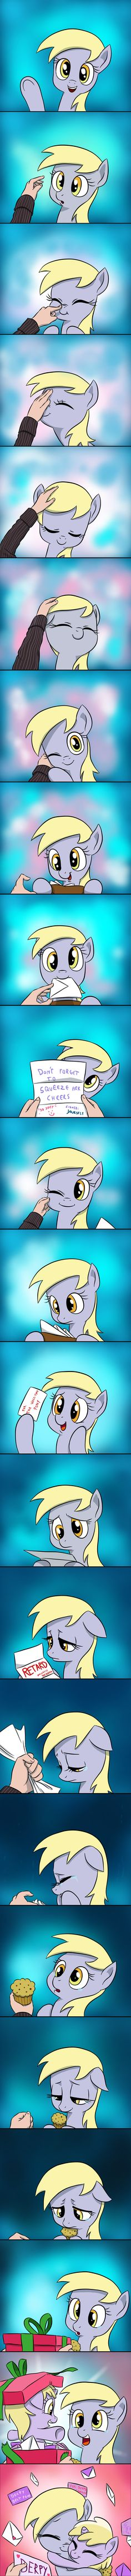 Derpy Simulator by doubleWbrothers.deviantart.com on @deviantART    ~  Bronies, try not to rage TOO hard at about the middle of this thing...